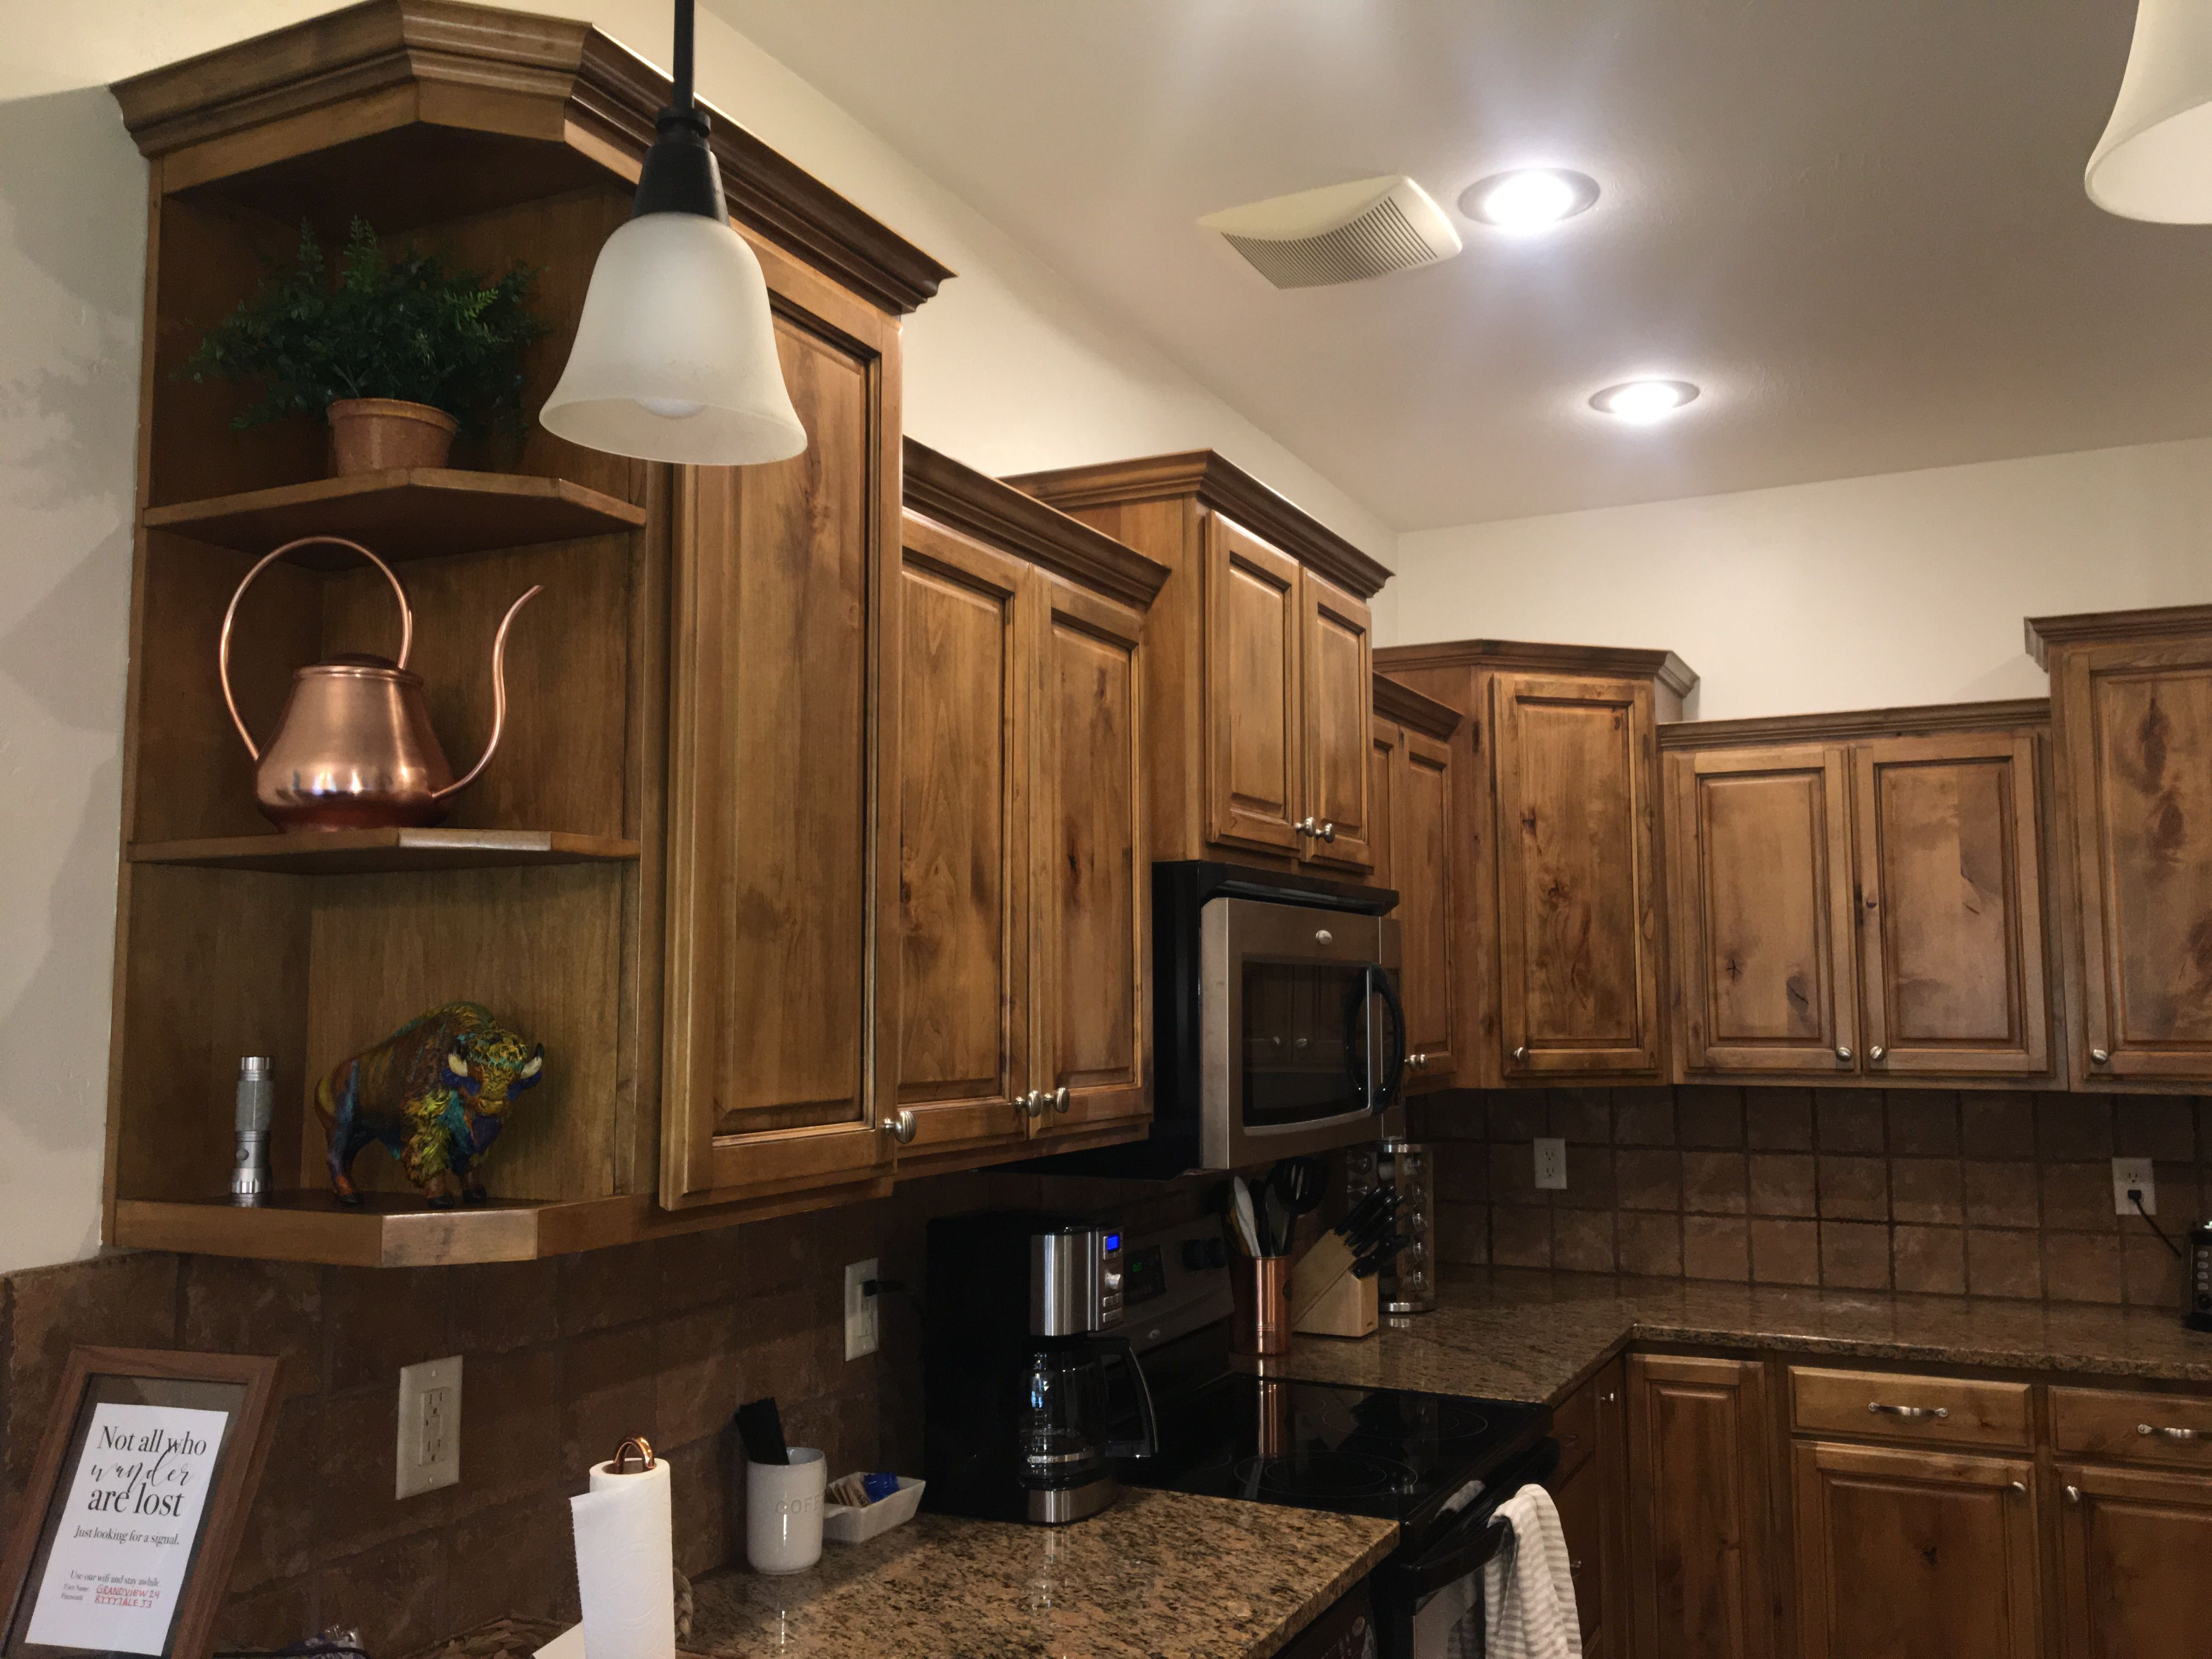 Pin By Becky Littlefield On Decorating In 2020 Decor Kitchen Cabinets Kitchen